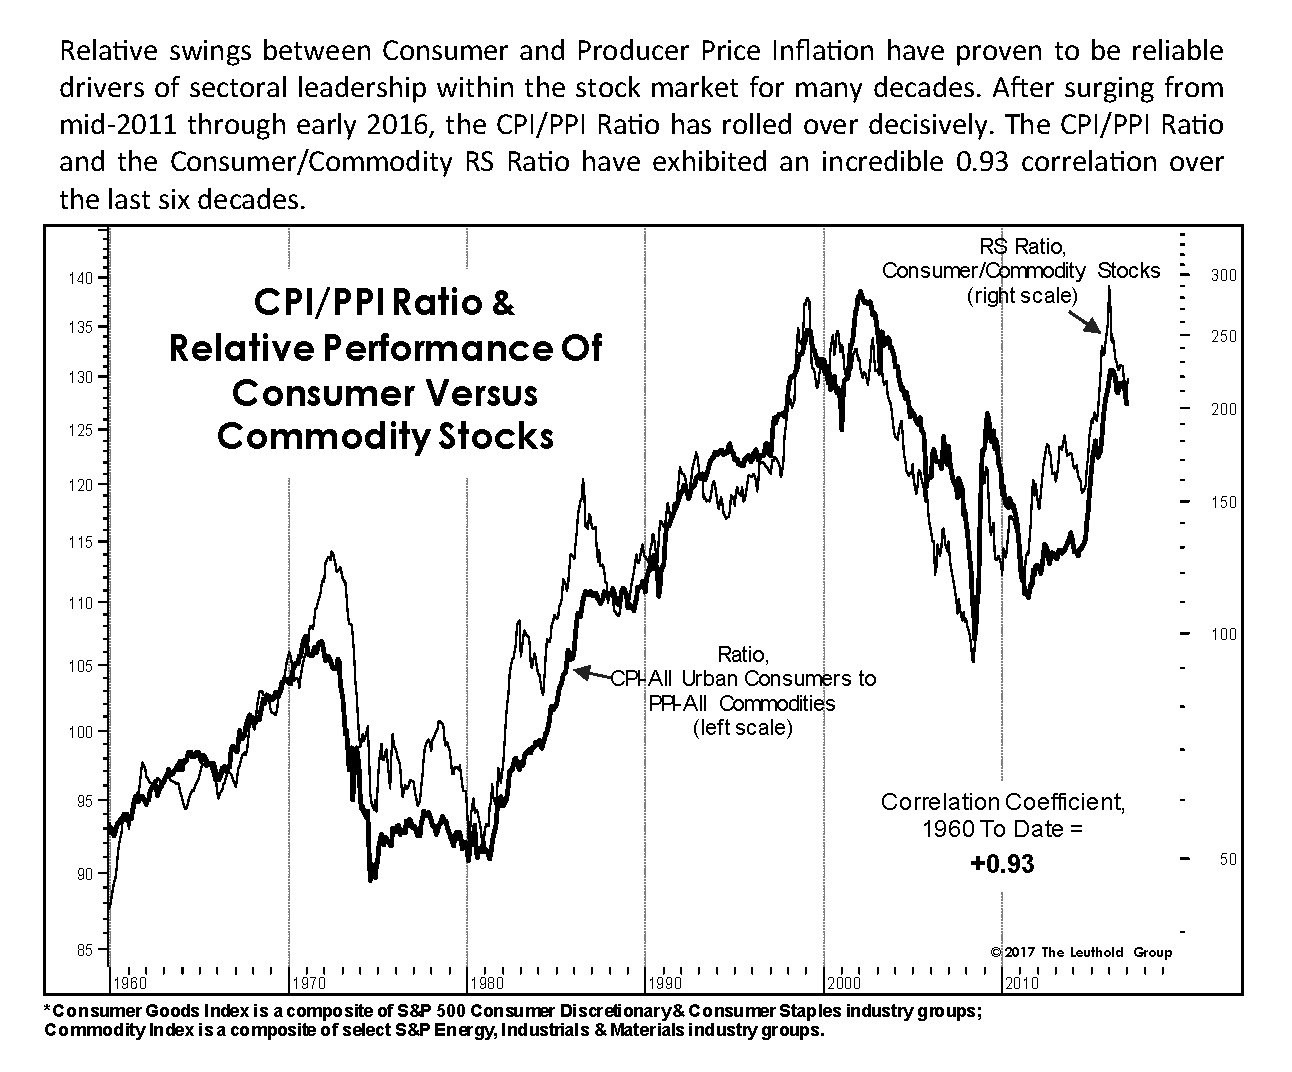 High correlation betw #inflation and fortunes of #Consumer, #Commodity stocks. Reversal of CPI/PPI Ratio should benefit #Materials #Energy https://t.co/Cu61YobVEc